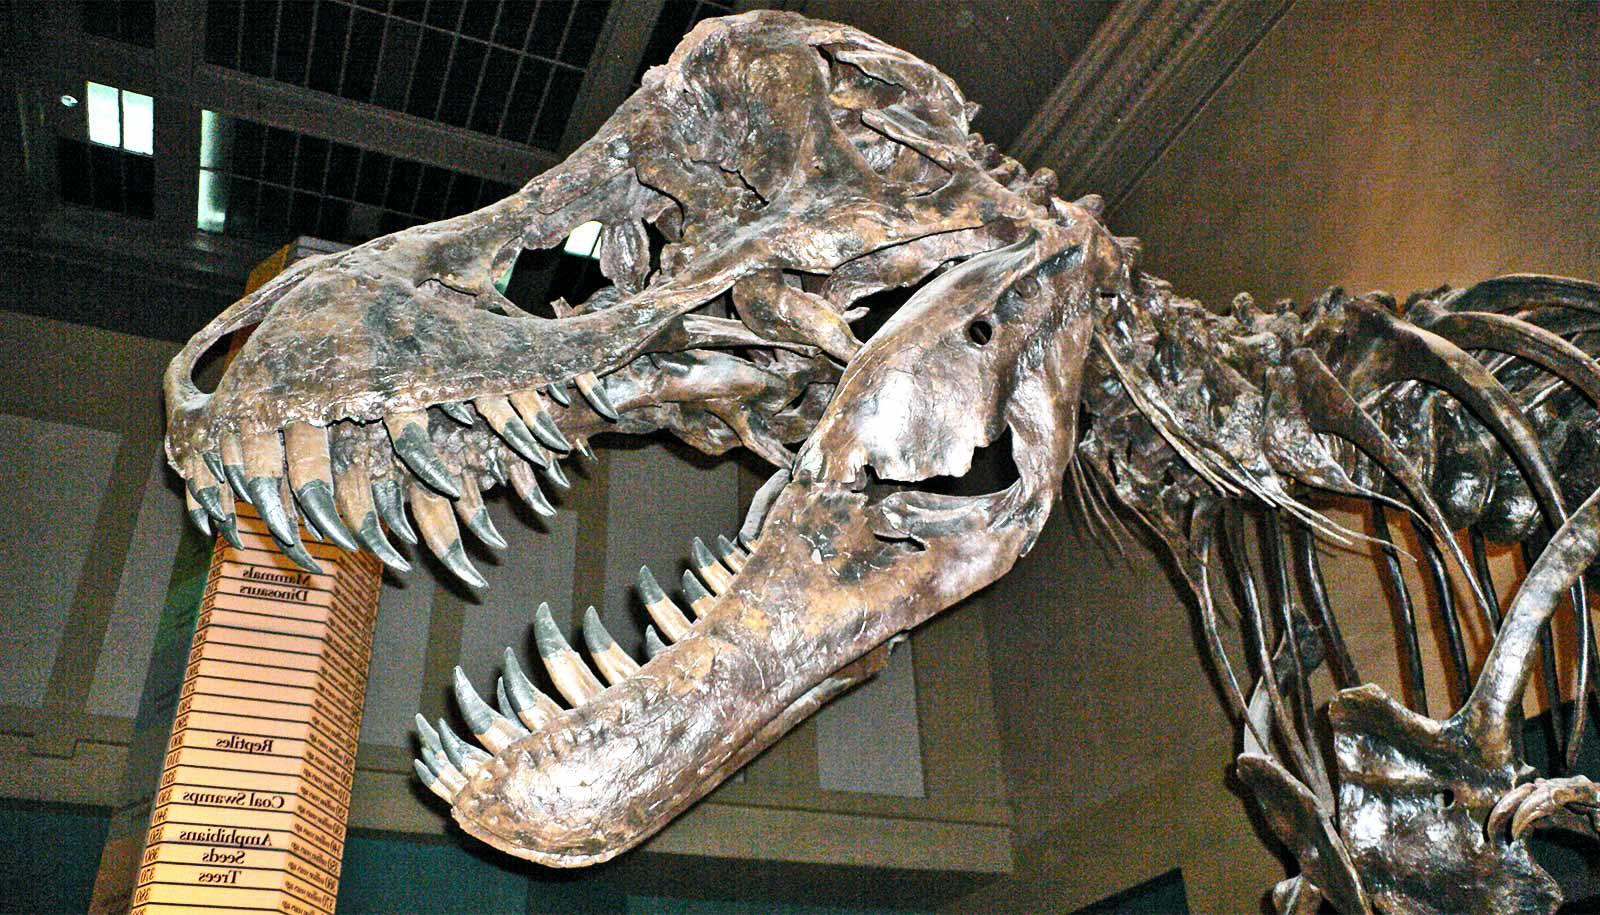 A T. Rex skeleton stands in a museum with its mouth open, showing its sharp teeth